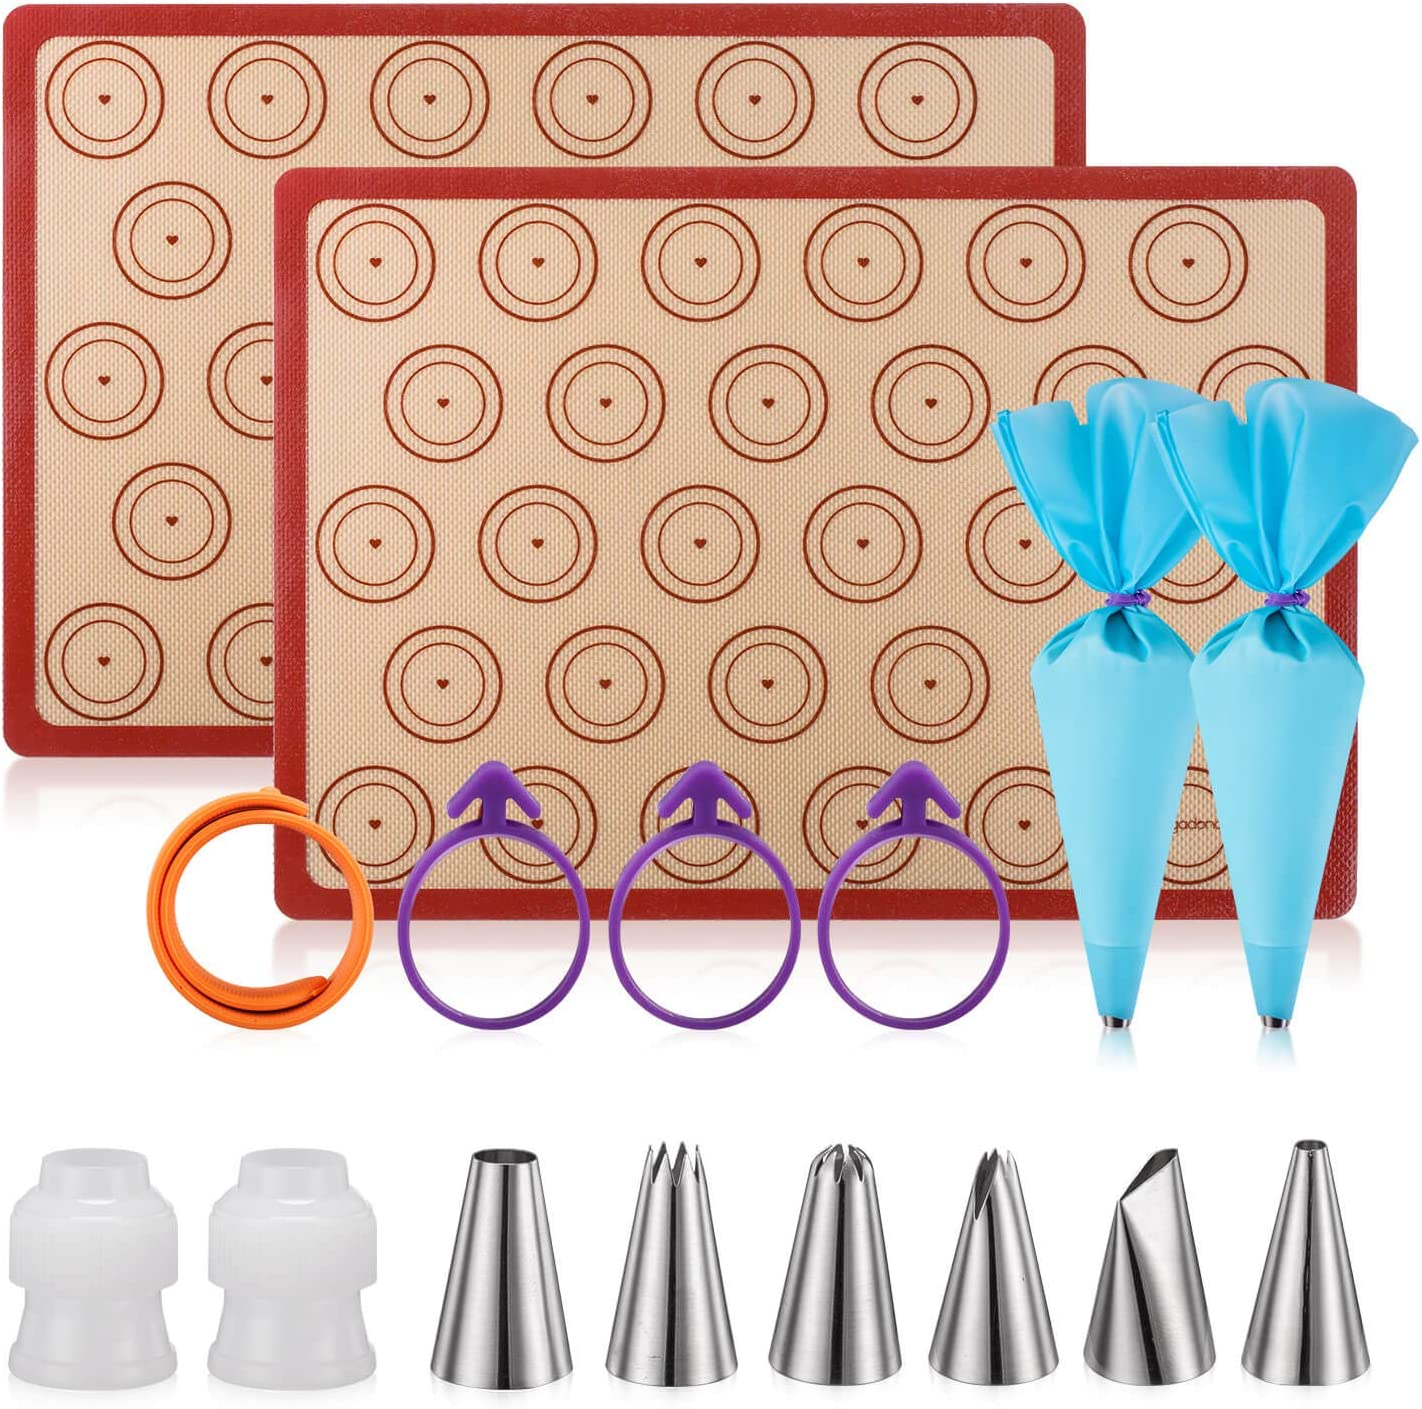 Set of 2 Silicone Baking Mat Kit, 2 Piping Bags, 6 Piping Tips, 3 Bag Ties, with 2 couplers